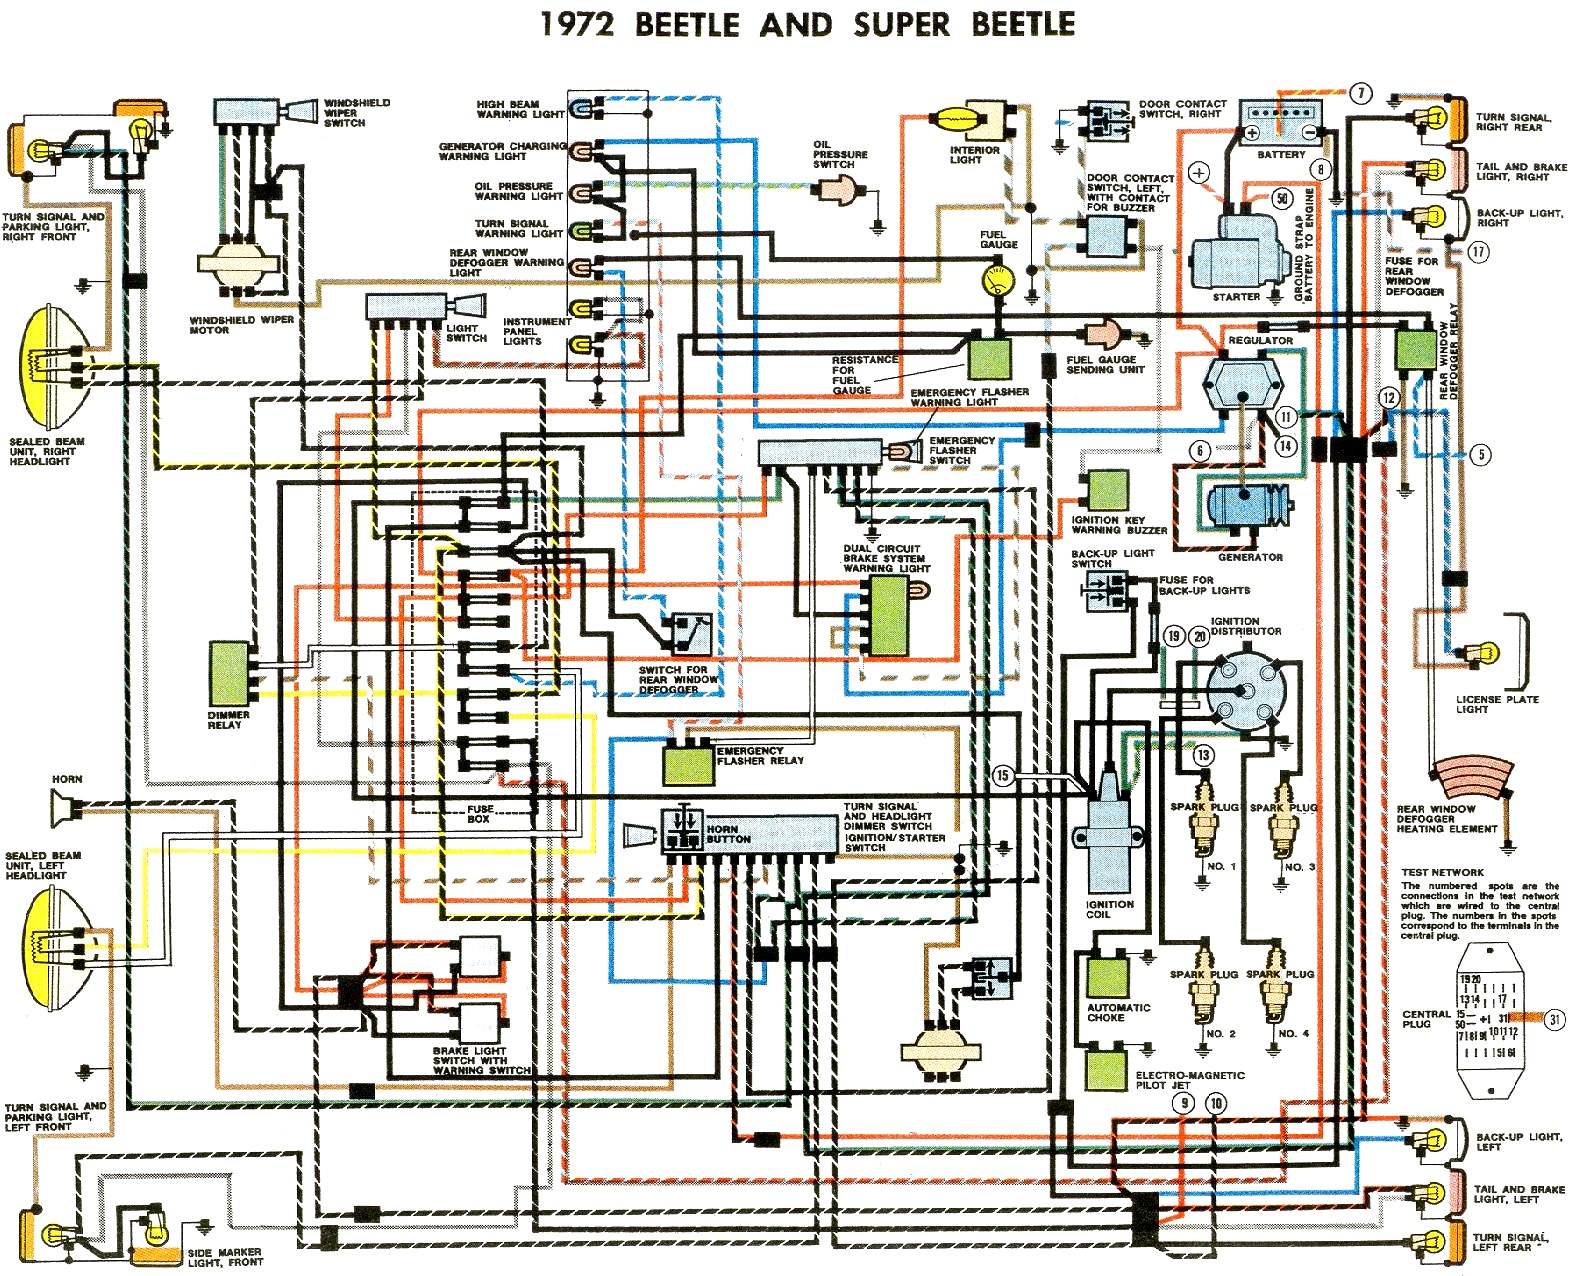 bug_72 1972 beetle wiring diagram thegoldenbug com 1978 vw super beetle wiring diagram at soozxer.org